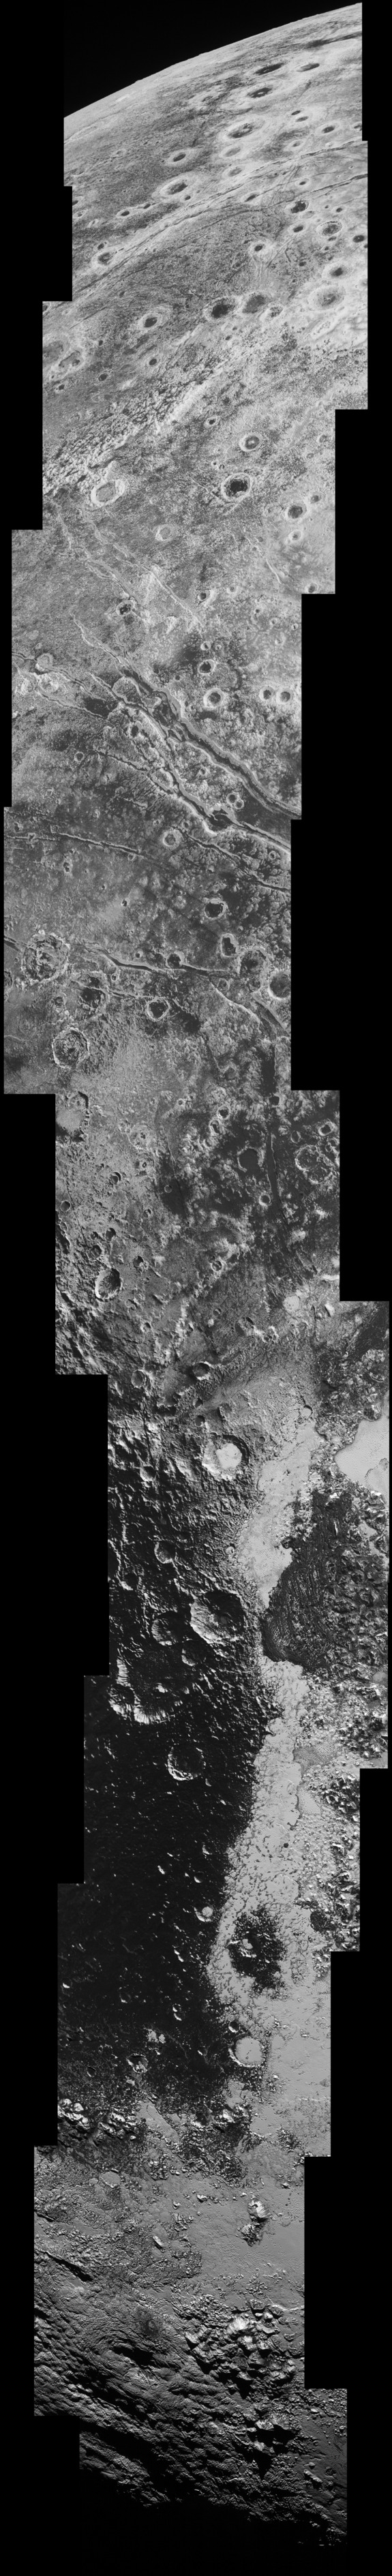 pluto-HD-cratered-plains